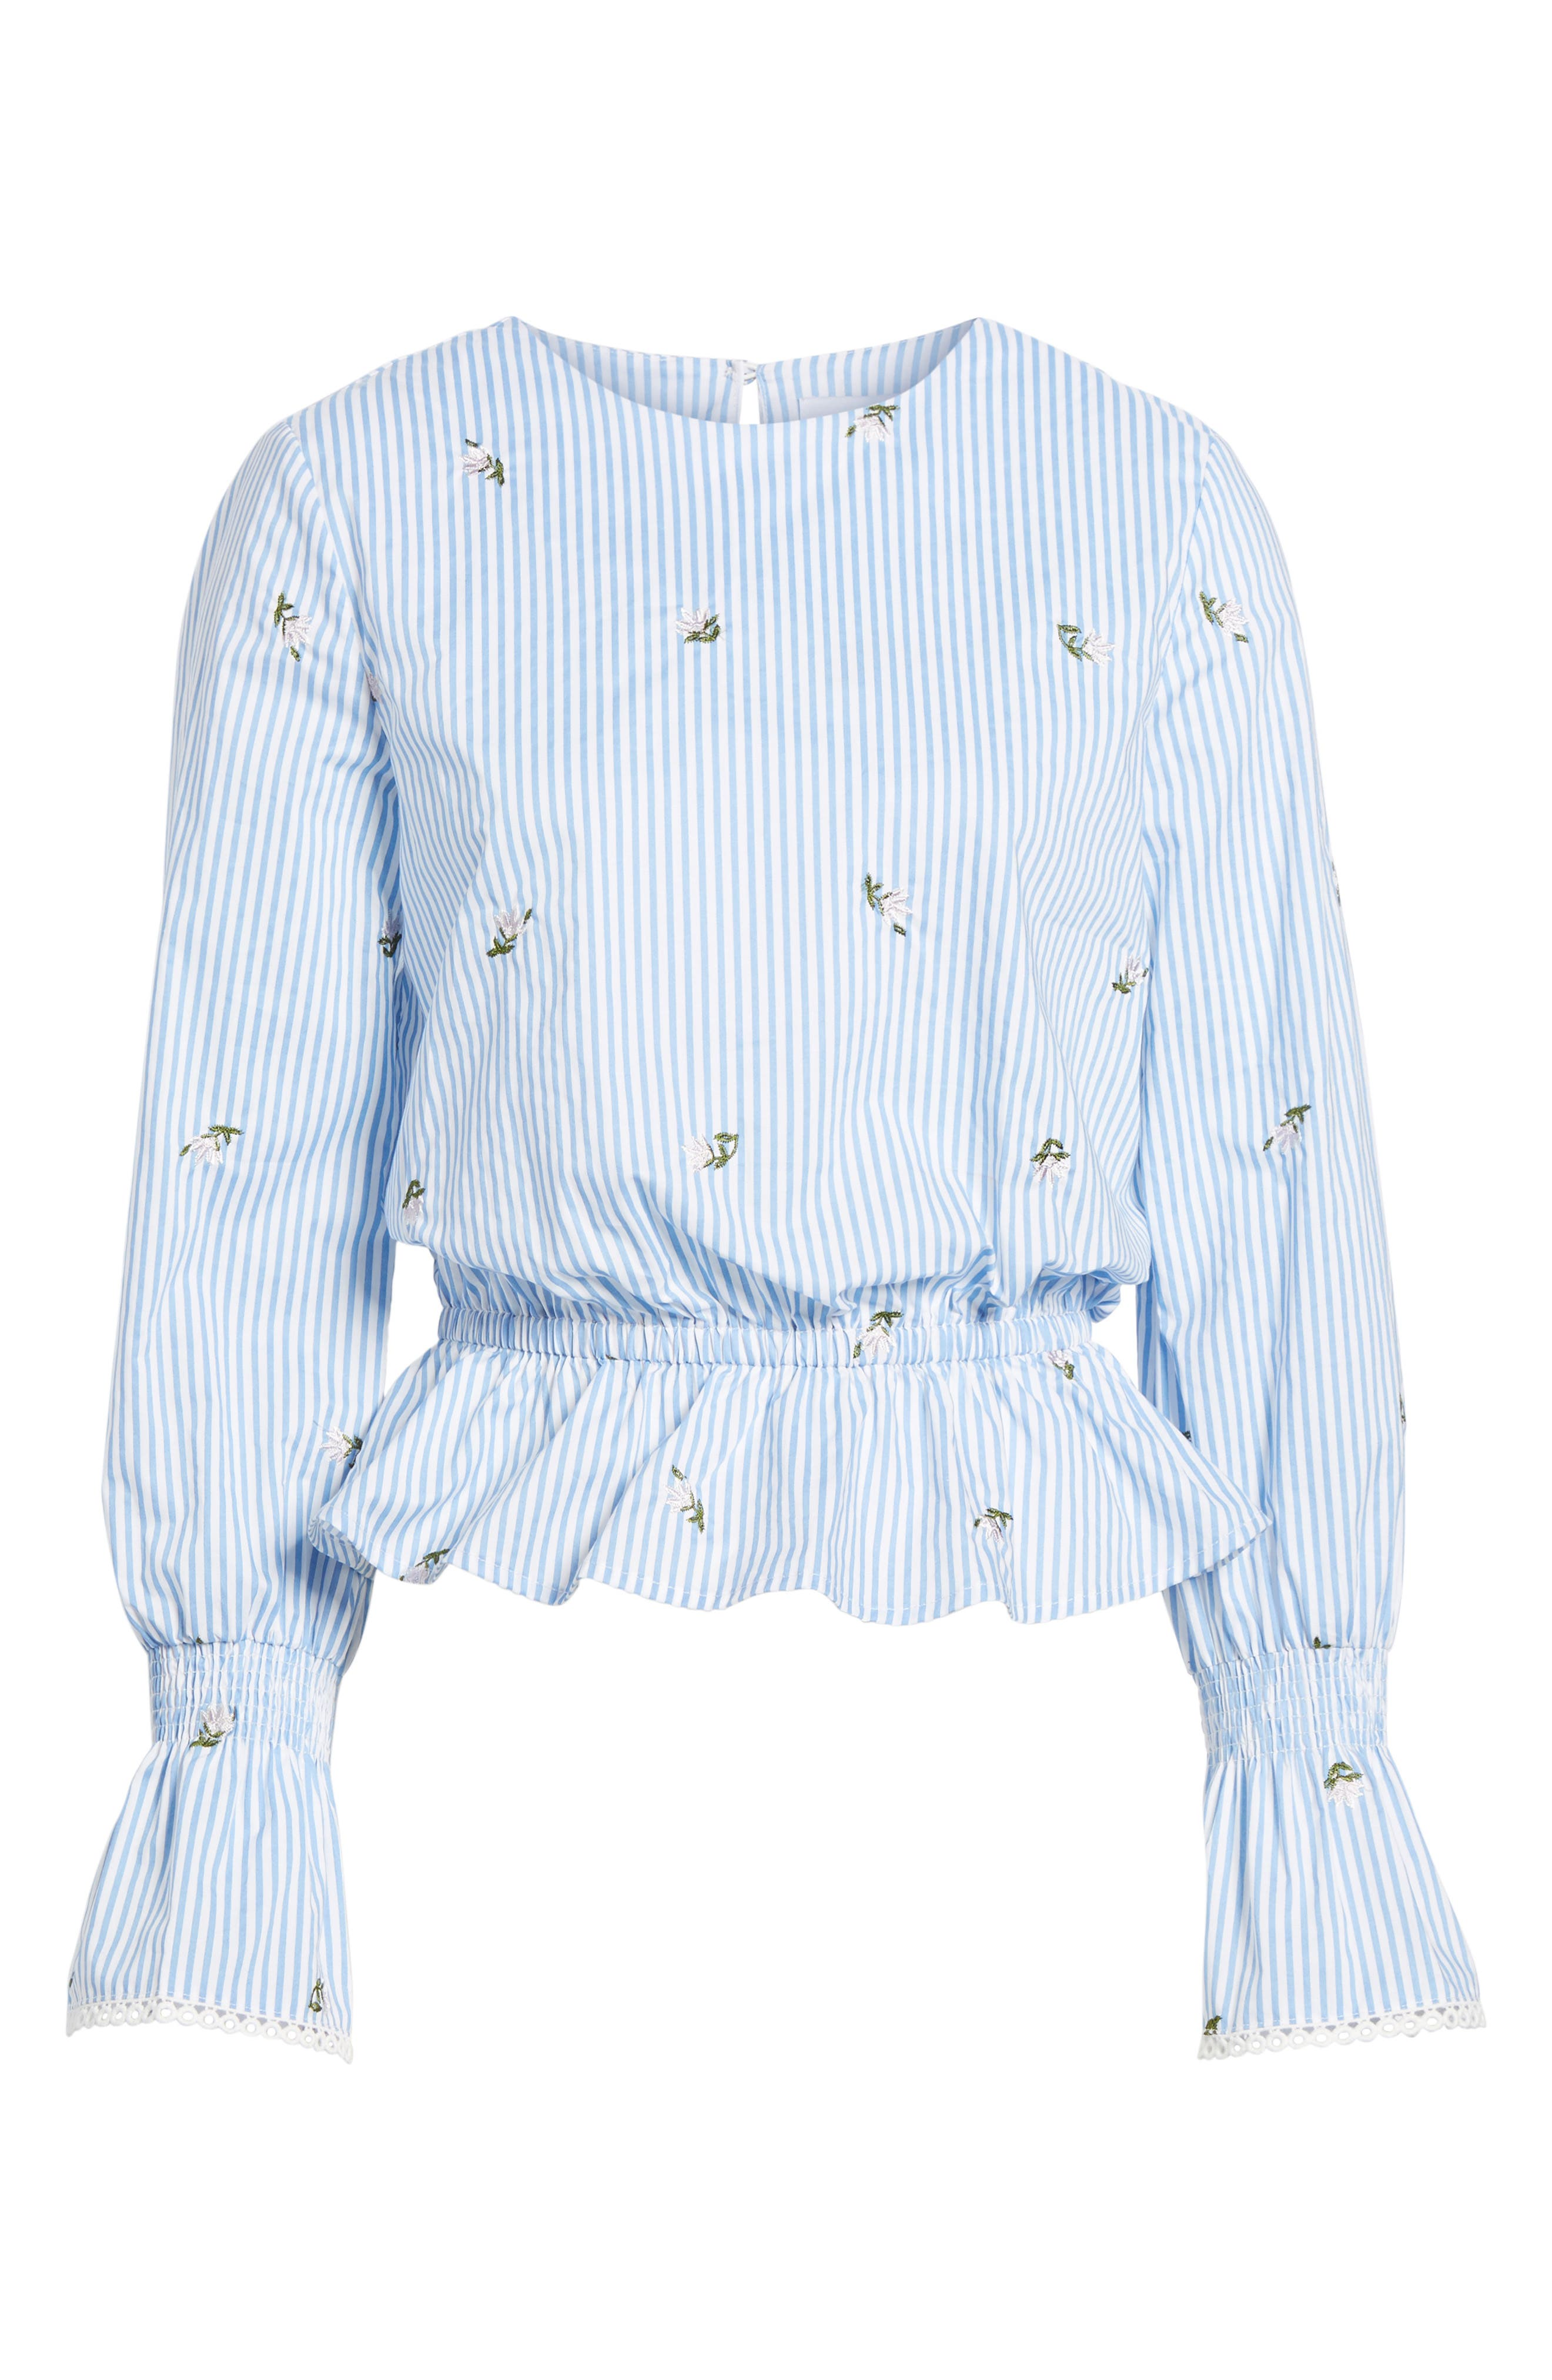 Embroidered Peplum Top,                             Alternate thumbnail 6, color,                             Blue/ Ivory Stripe